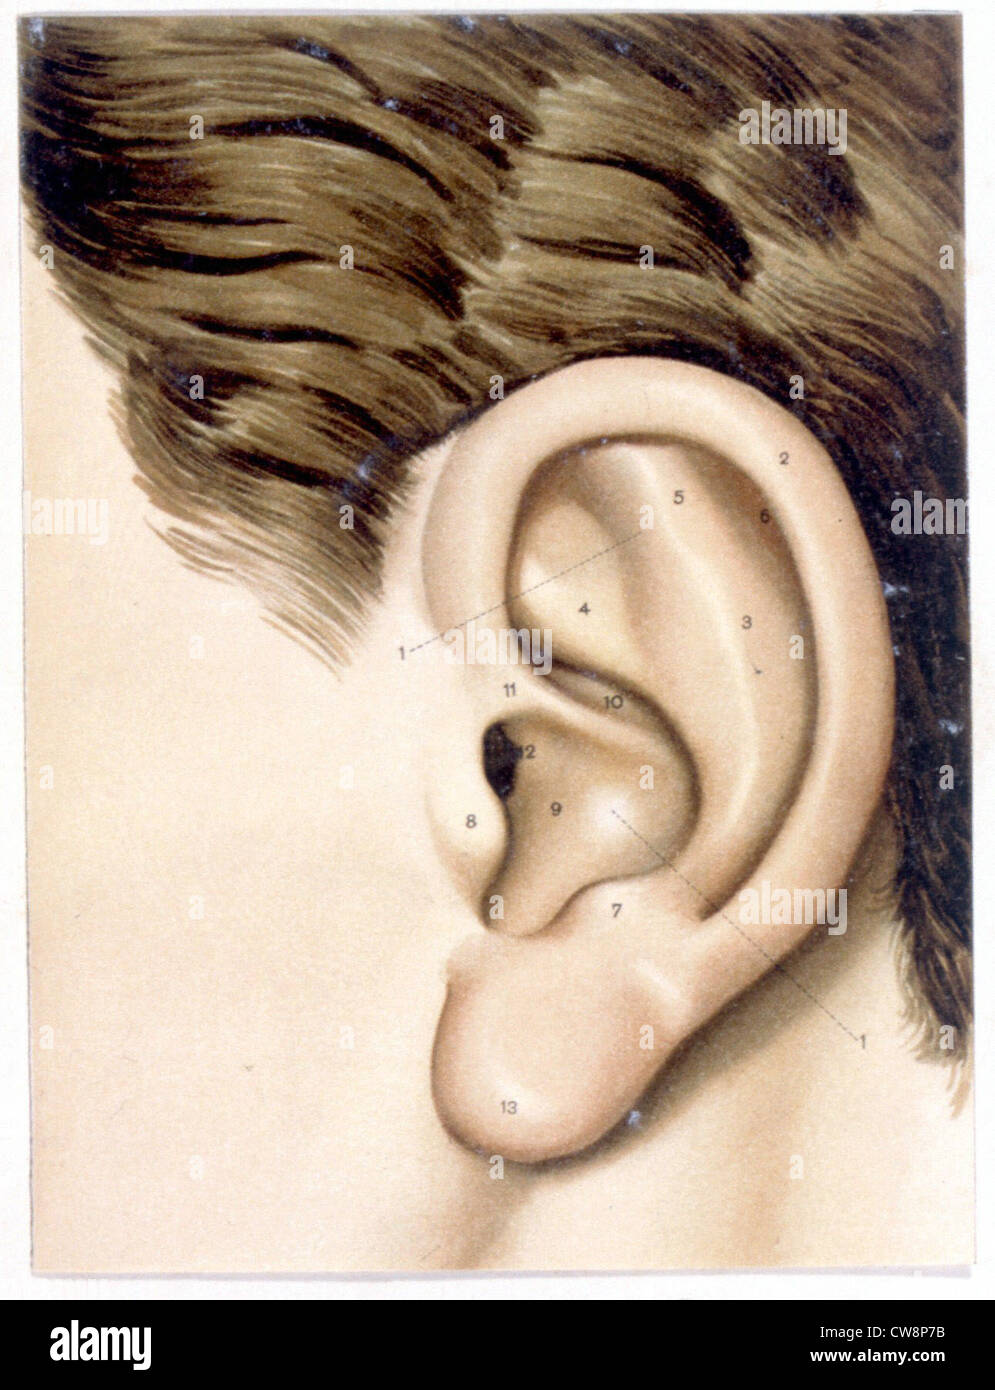 Anatomy Ear Human Outer Ear Medicine Drawing Sciences Stock Photos